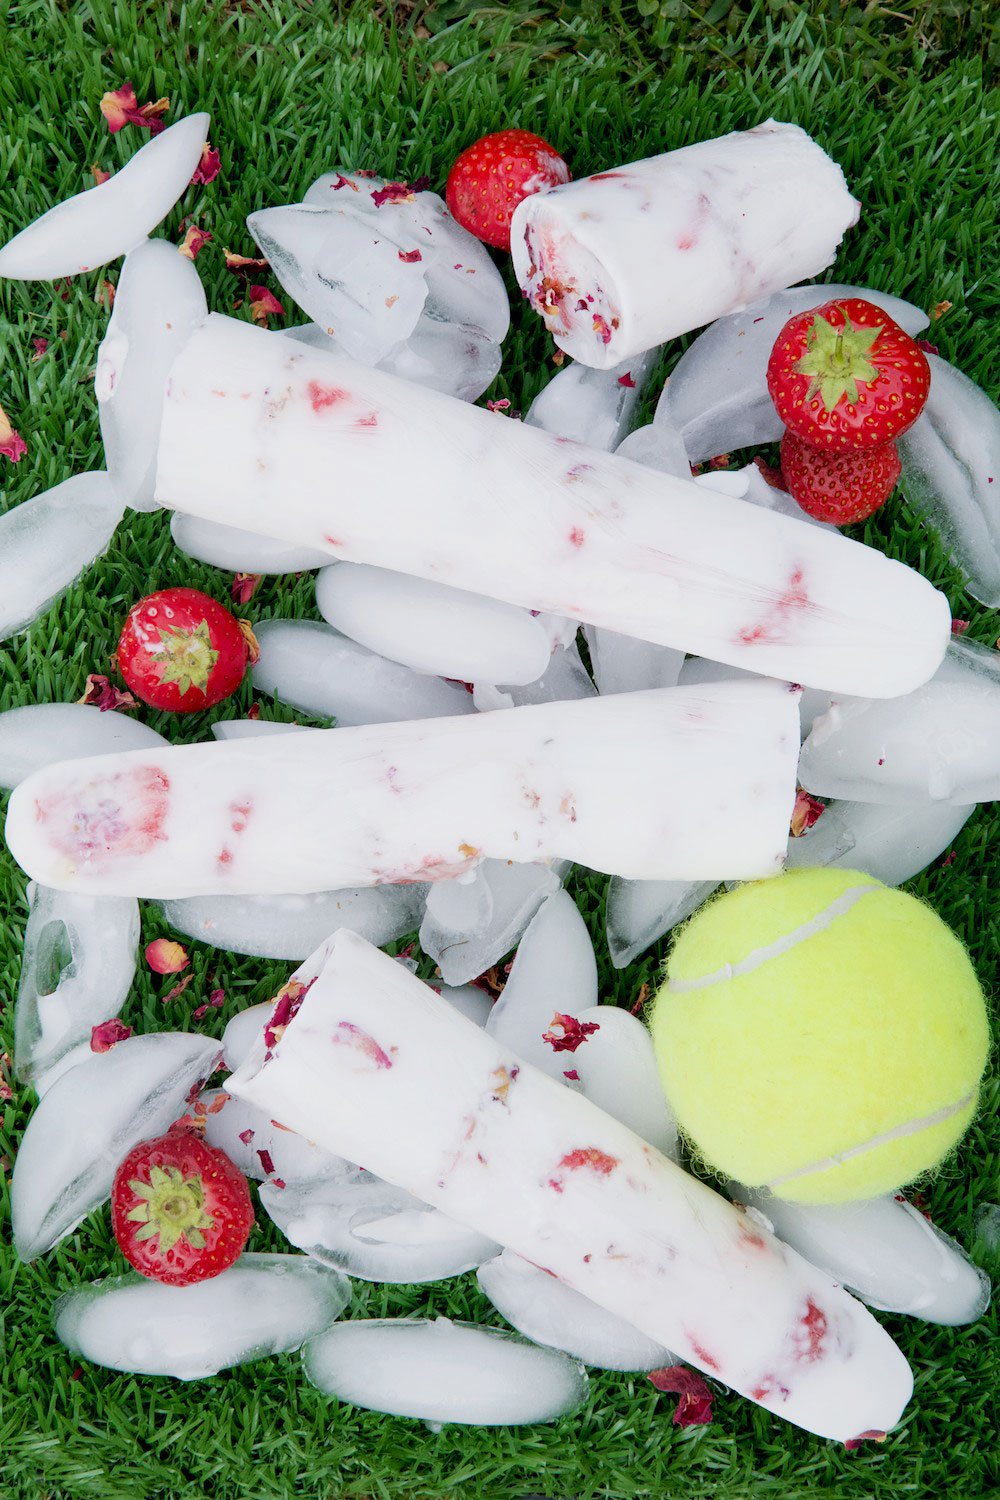 Strawberry and Cream Ice Lollies